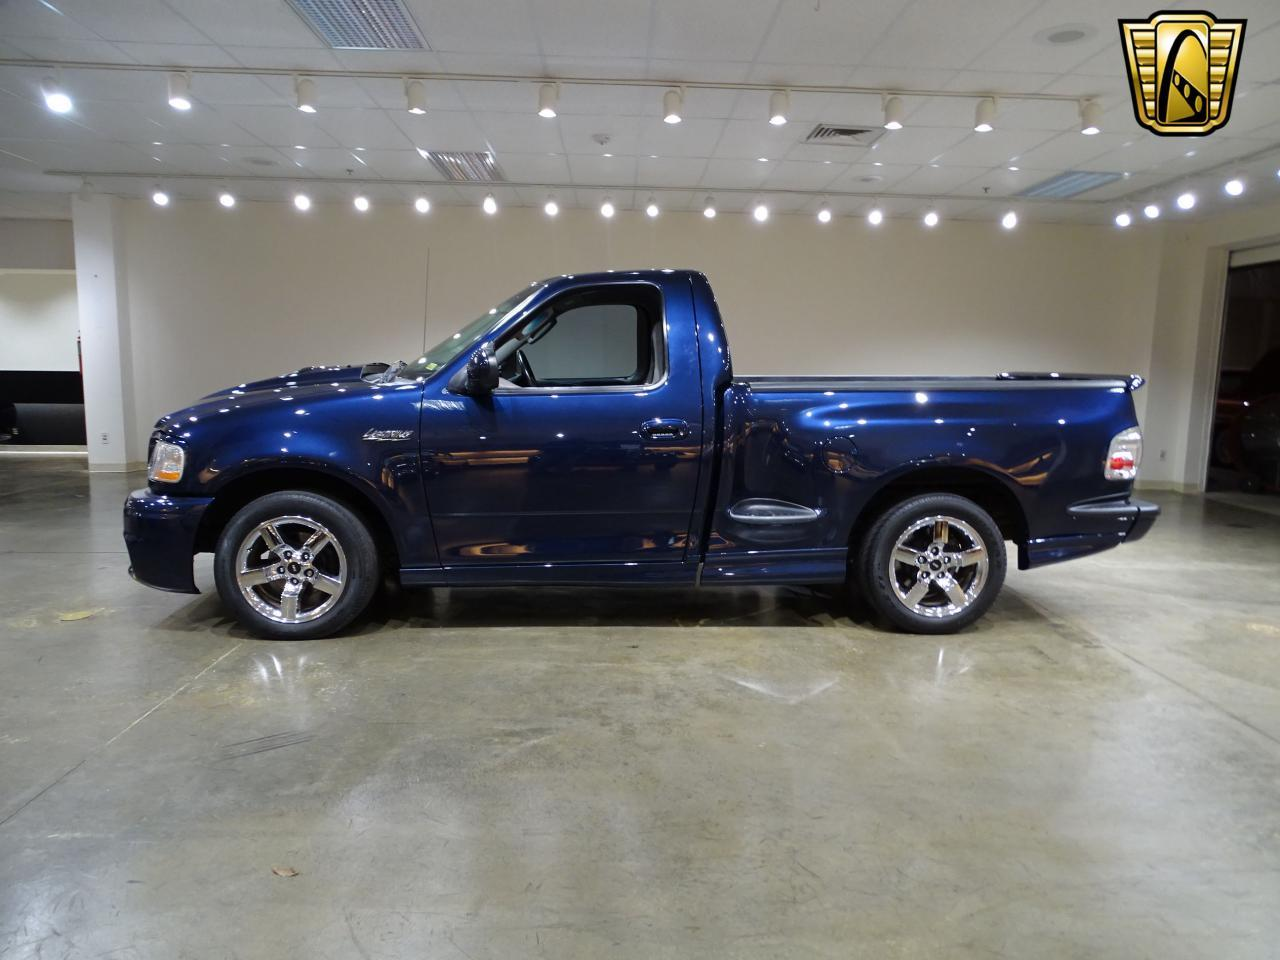 Large Picture of 2002 F150 - $20,595.00 Offered by Gateway Classic Cars - St. Louis - MOAG